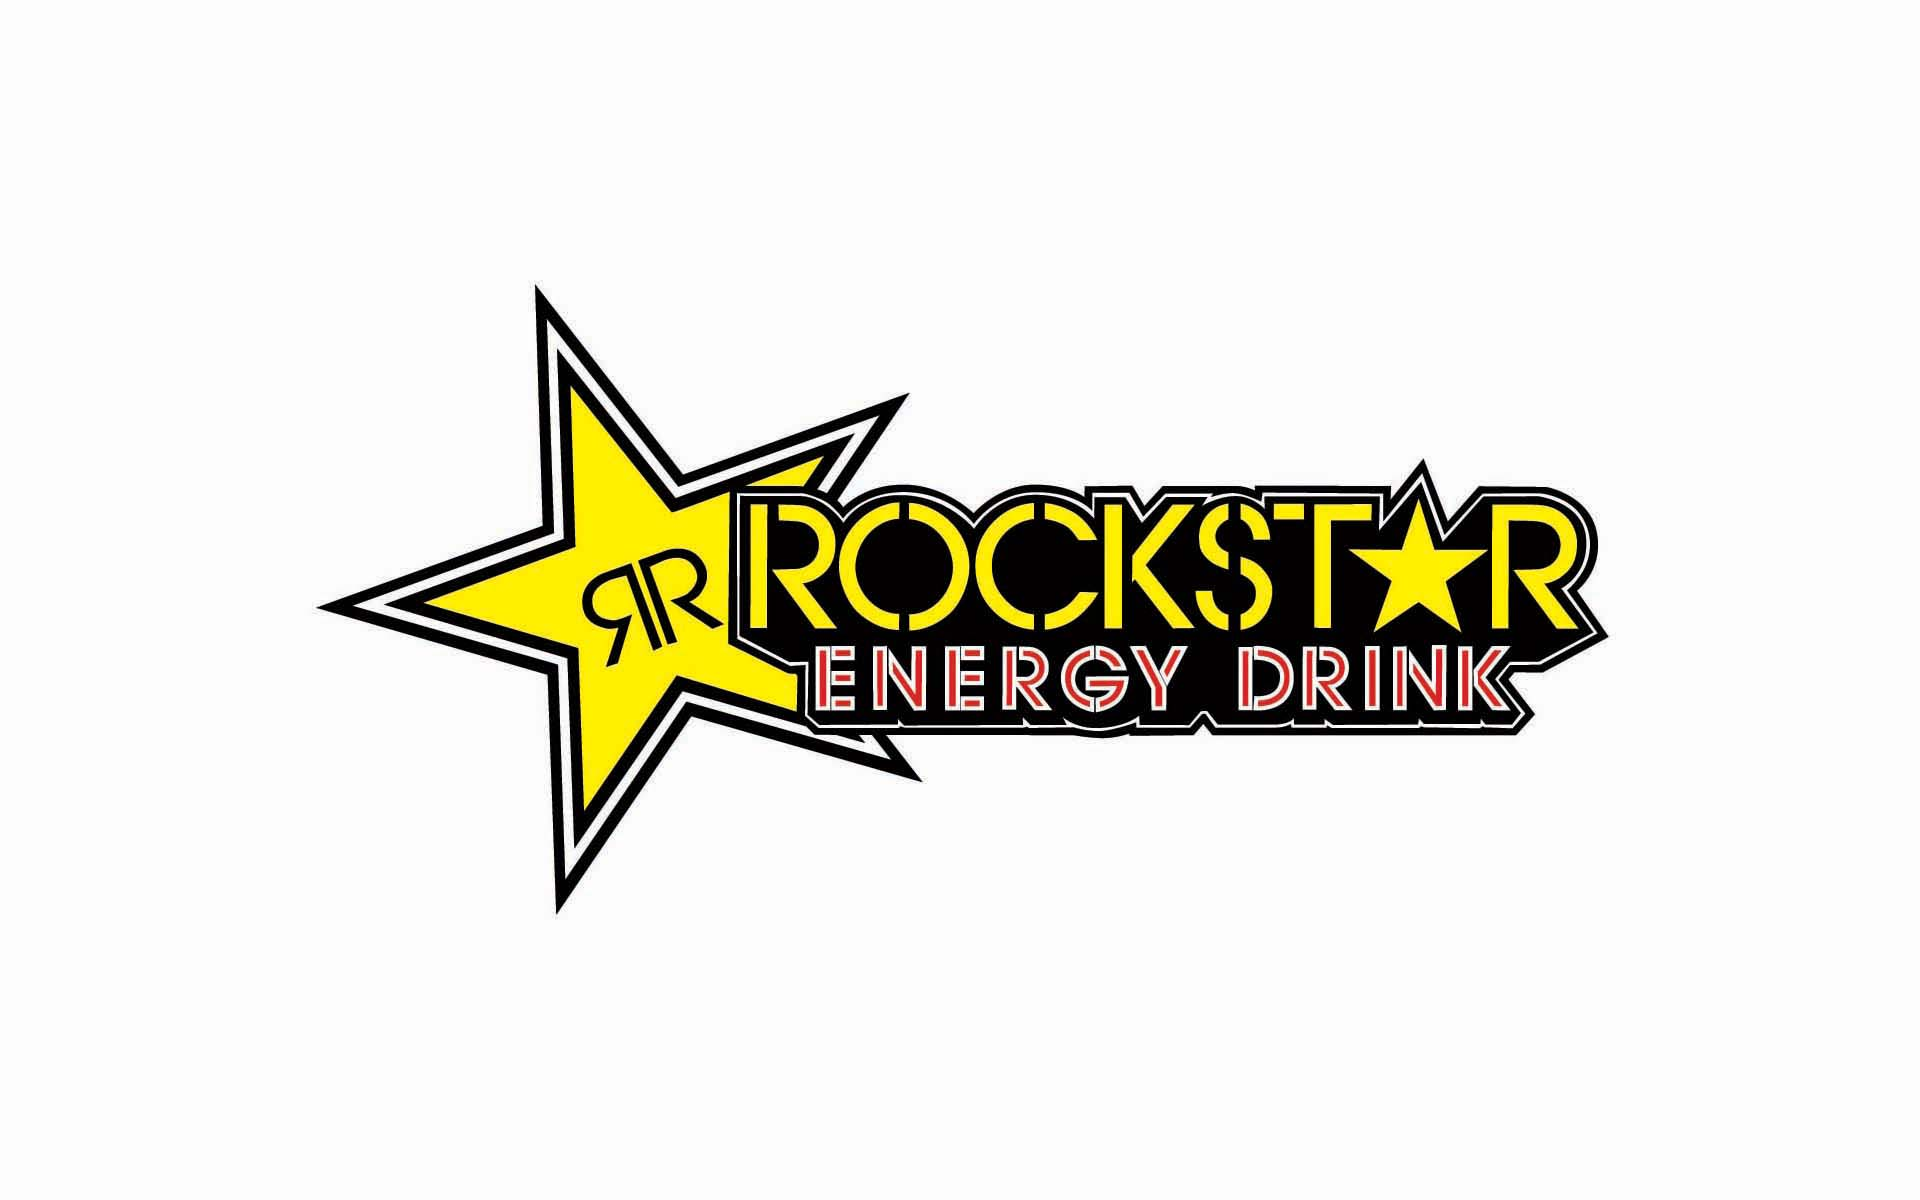 rockstar energy drink logo wallpaper 58817 1920x1200 px